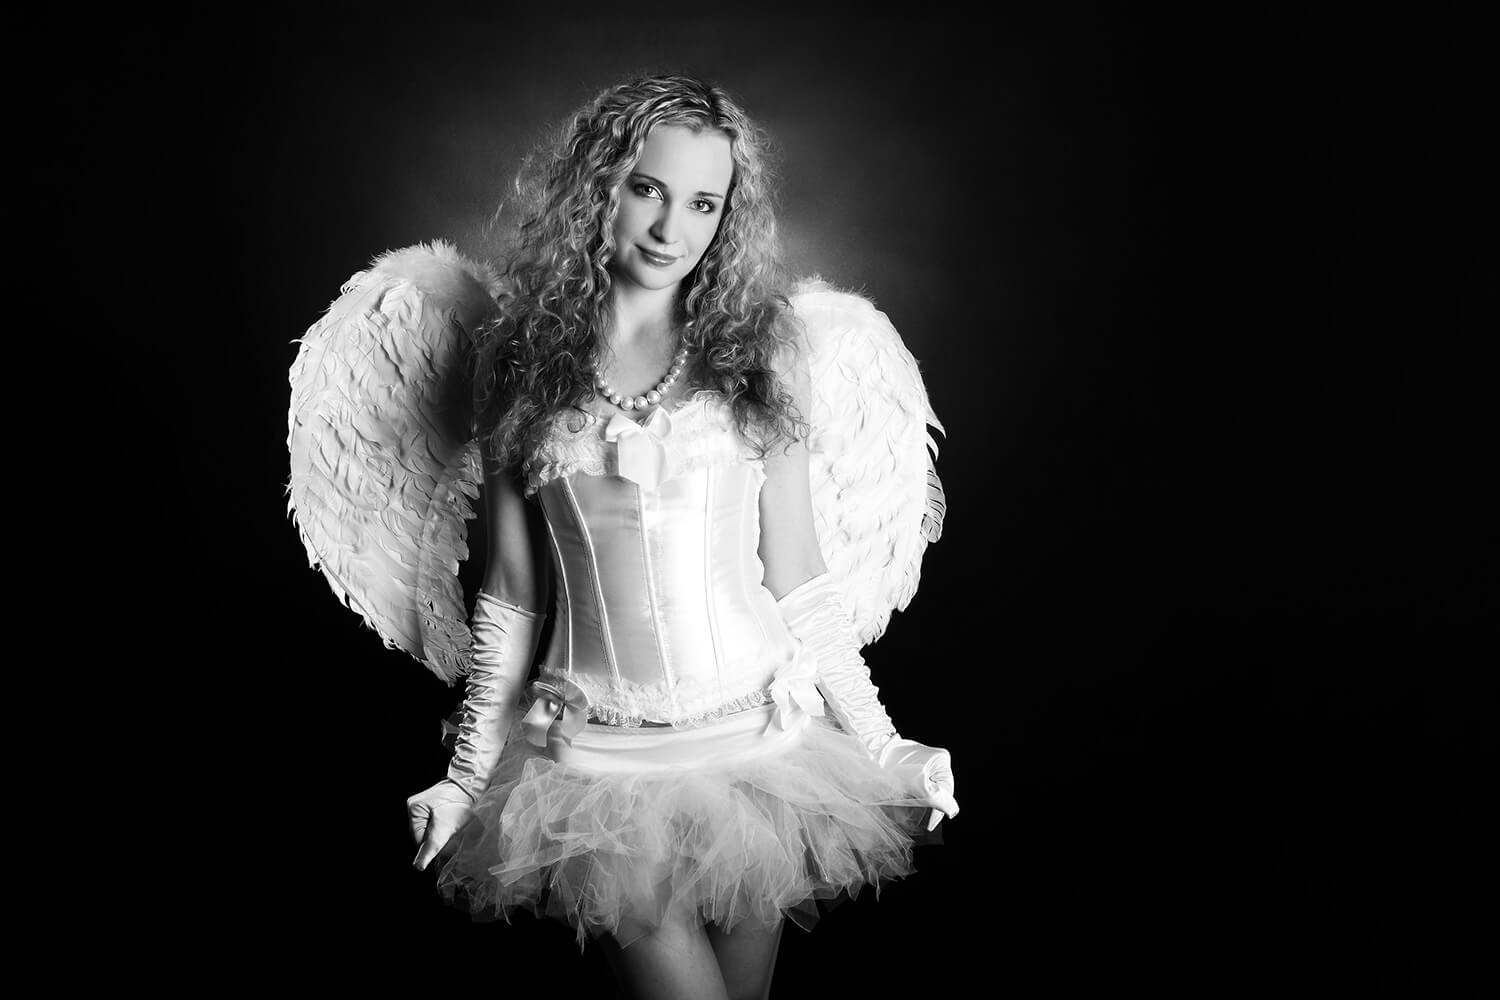 black and white fashion photo of a woman in a white dress and with angel wings